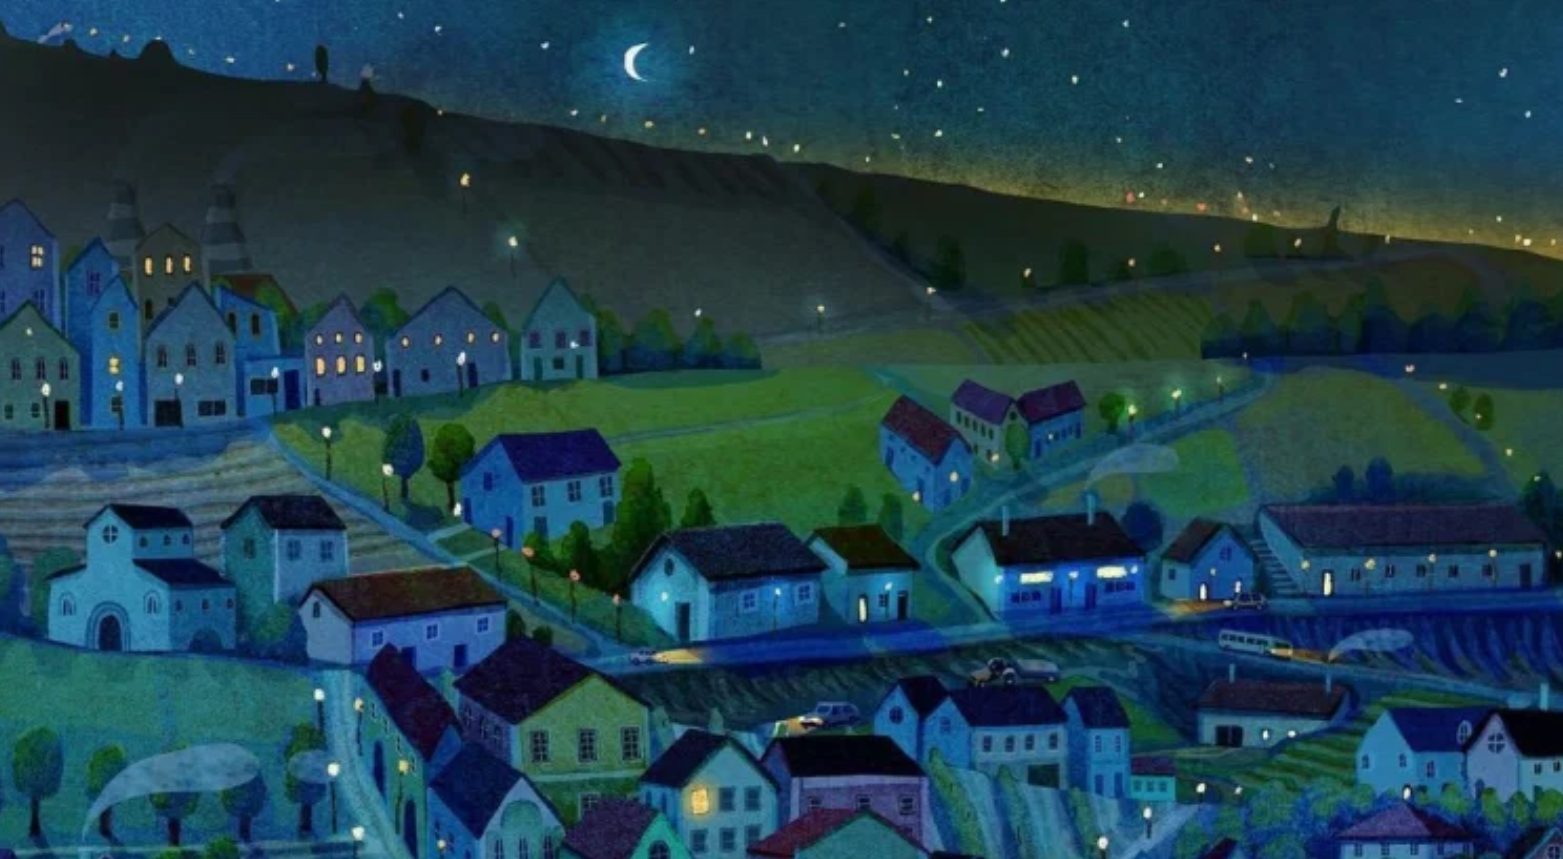 Nothing passes from rest to motion - unless you move it in hidden ways starry night cosy